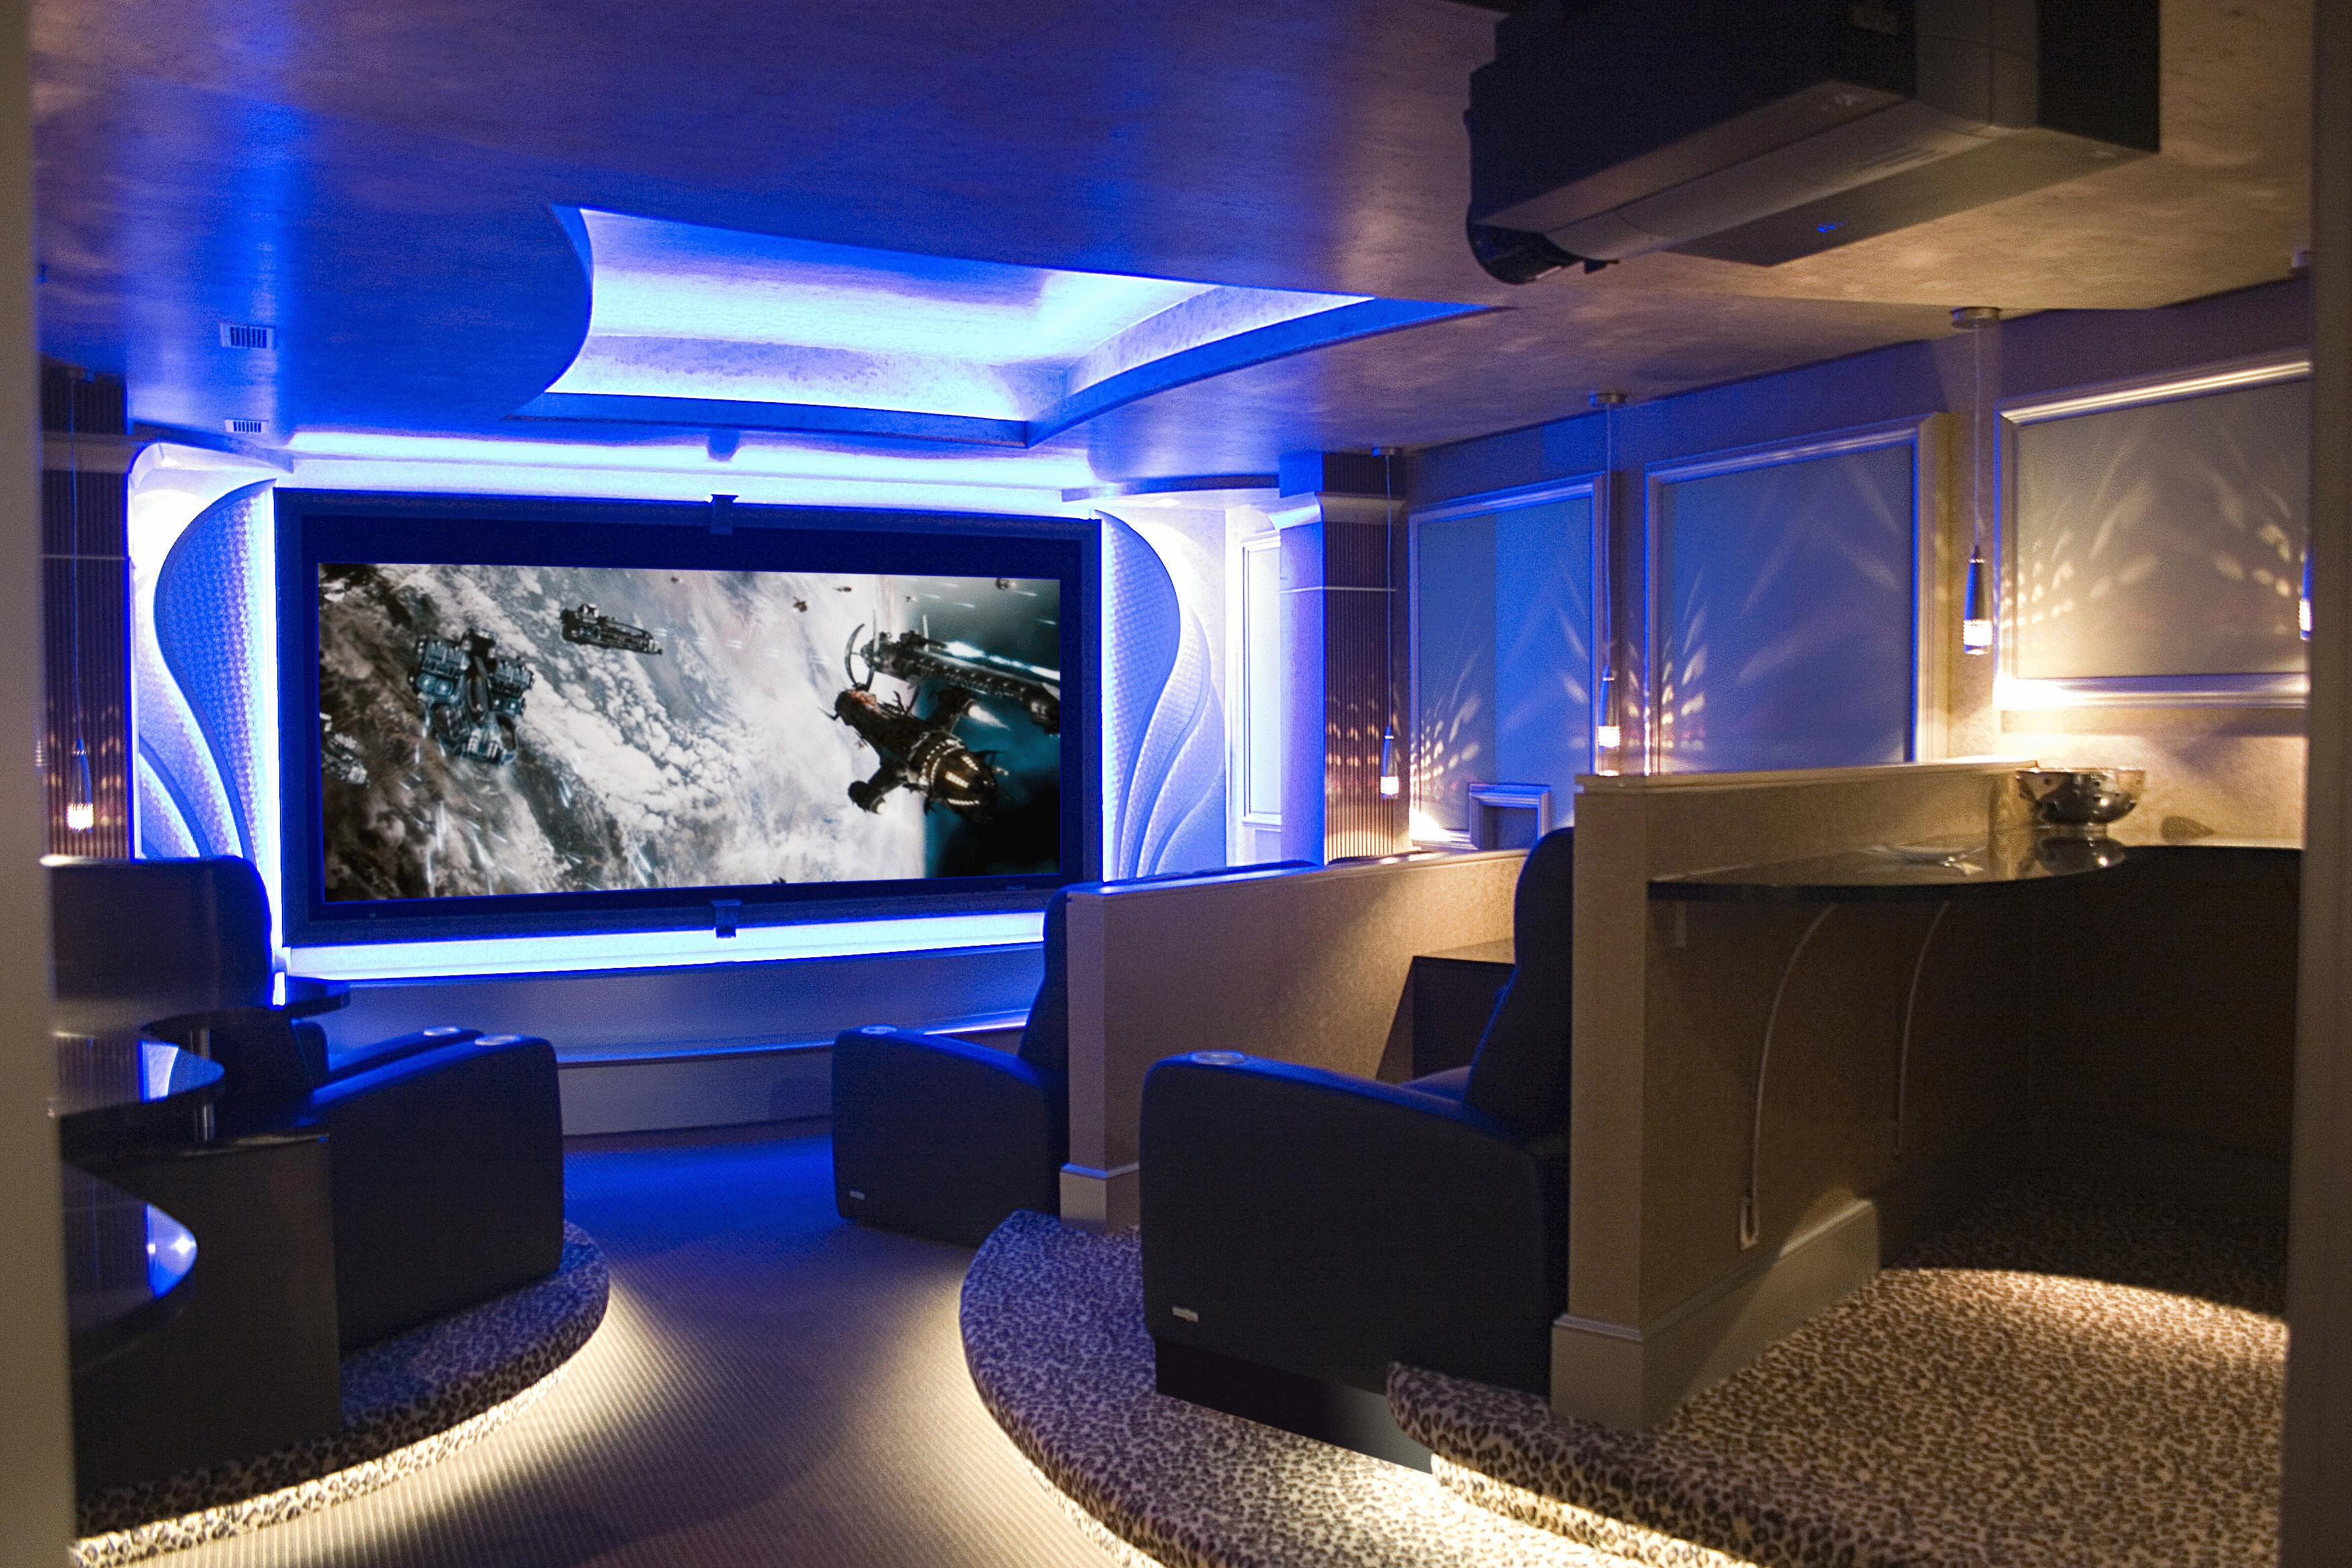 Advancements In Home Theater Audio Birmingham Whole House Audio Video